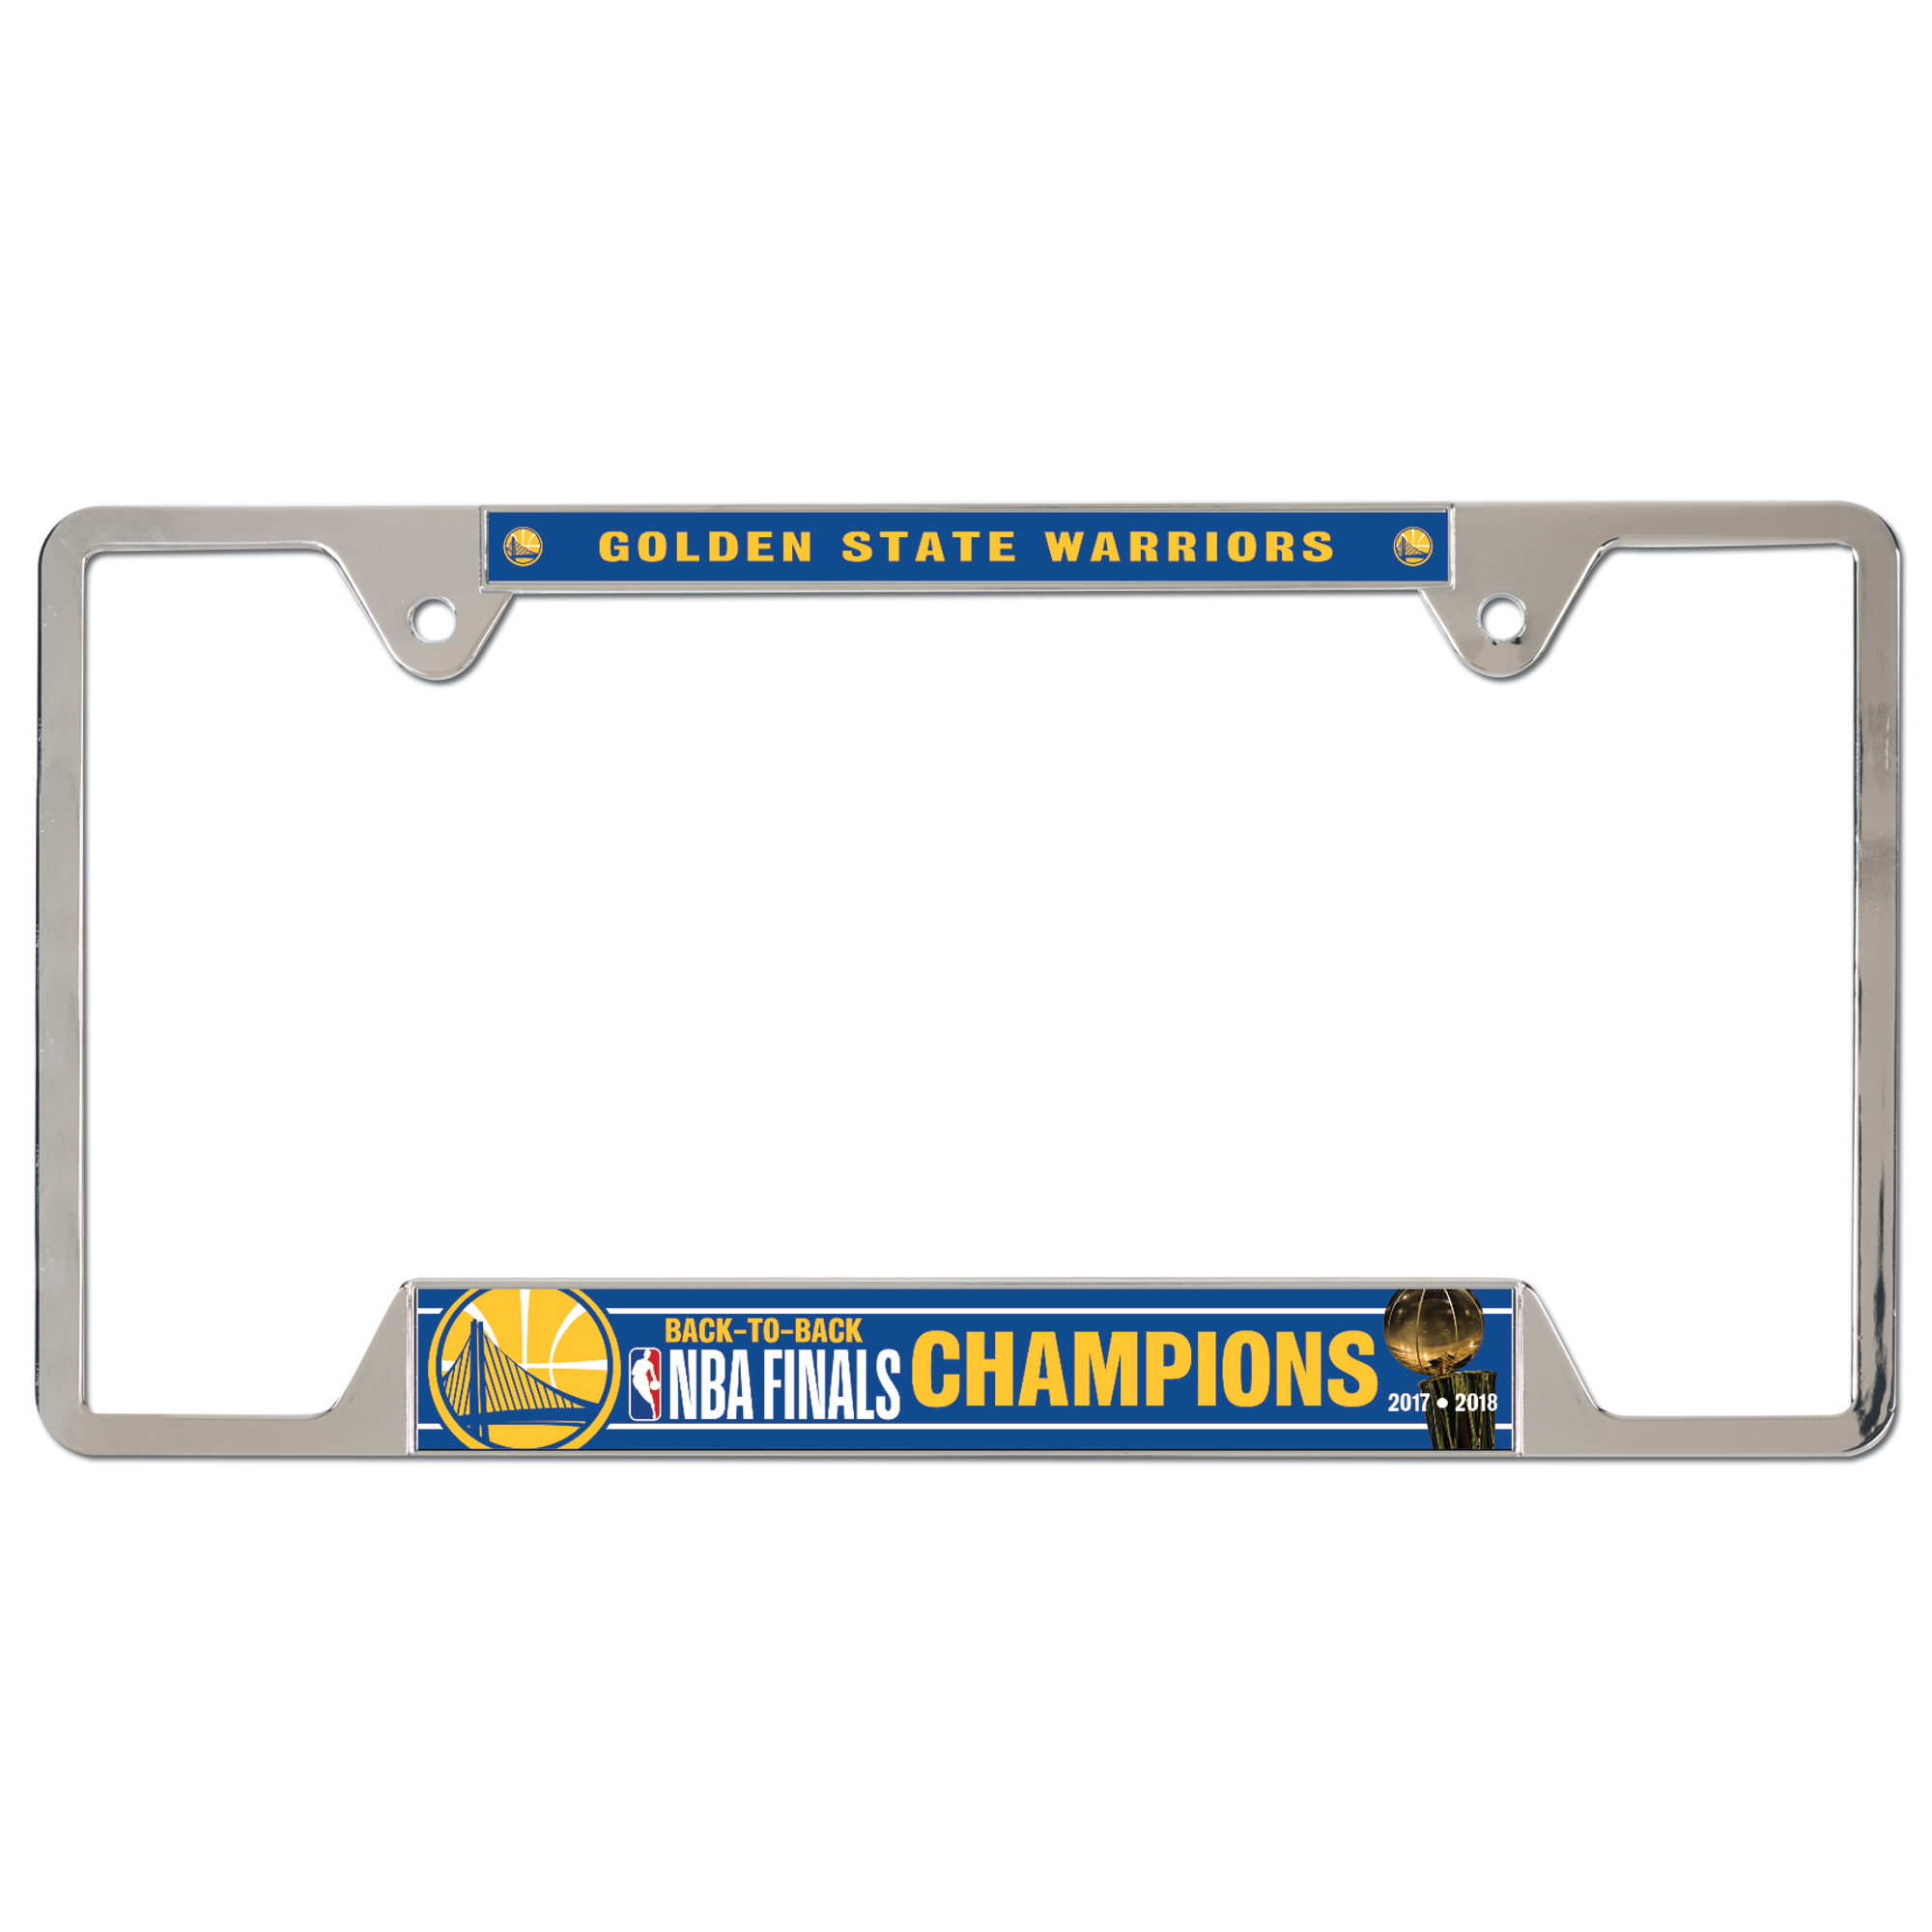 Golden State Warriors WinCraft 2018 NBA Finals Champions Metal License Plate Frame - No Size